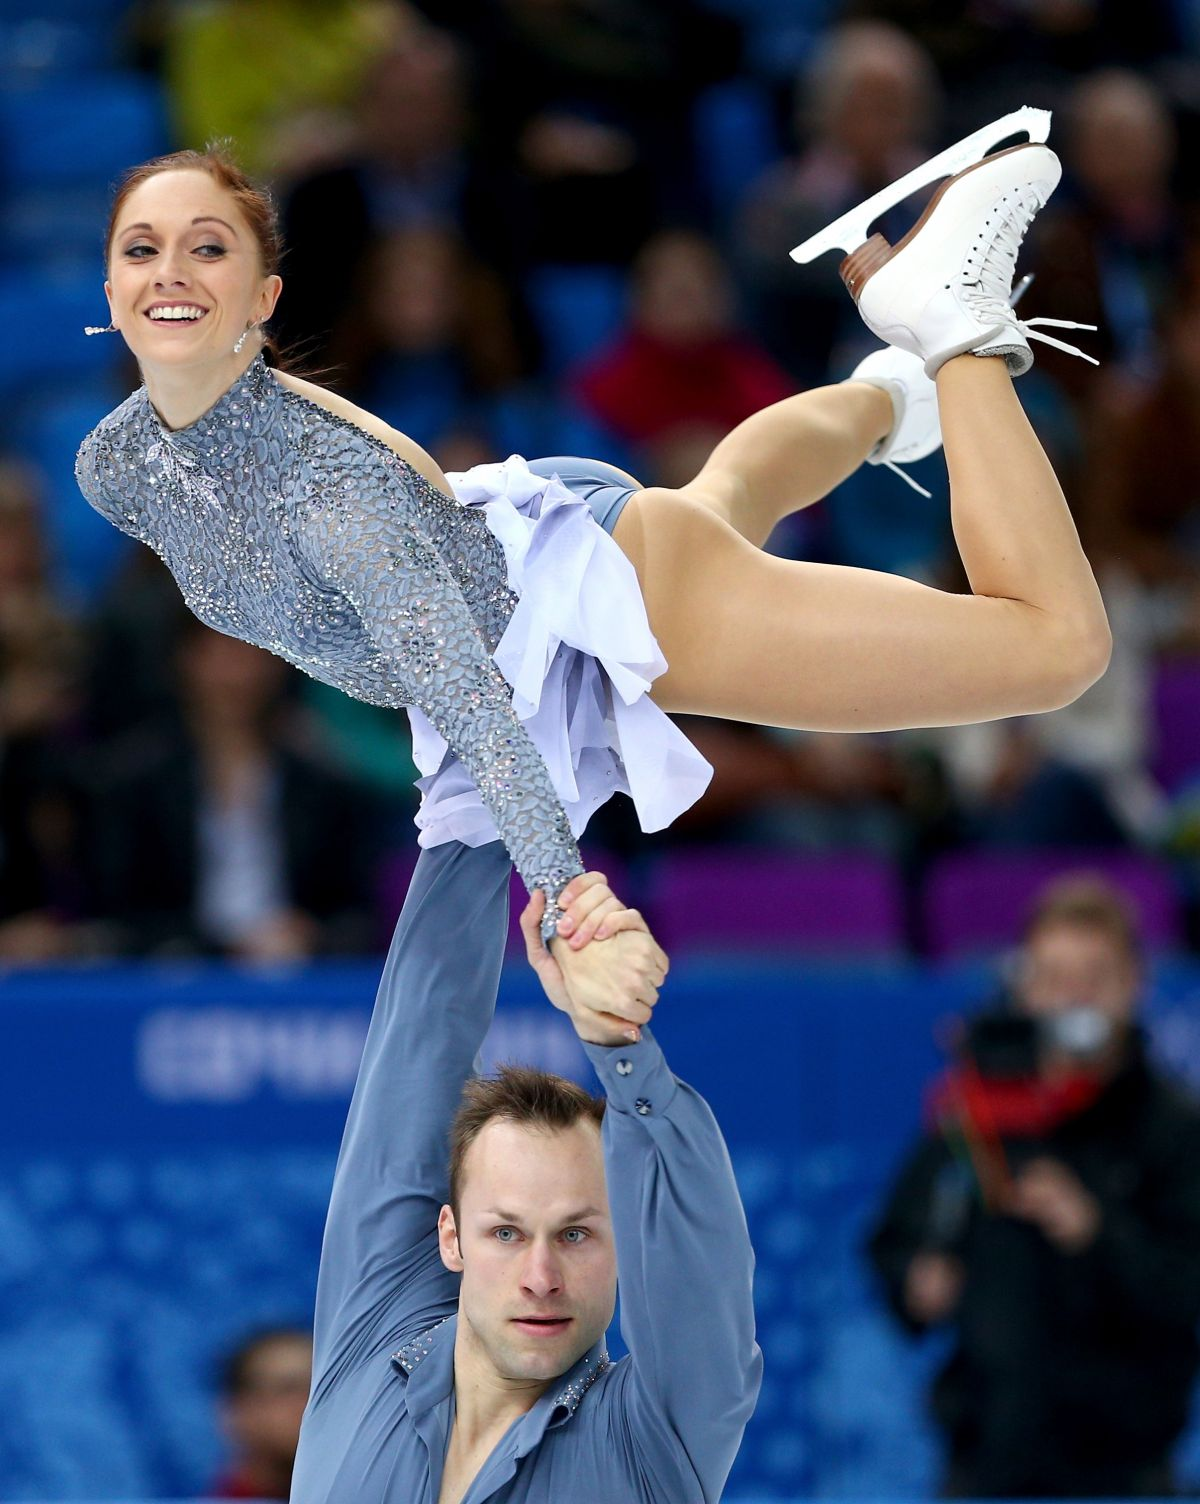 Maylin Wende And Daniel Wende At Winter Olympics In